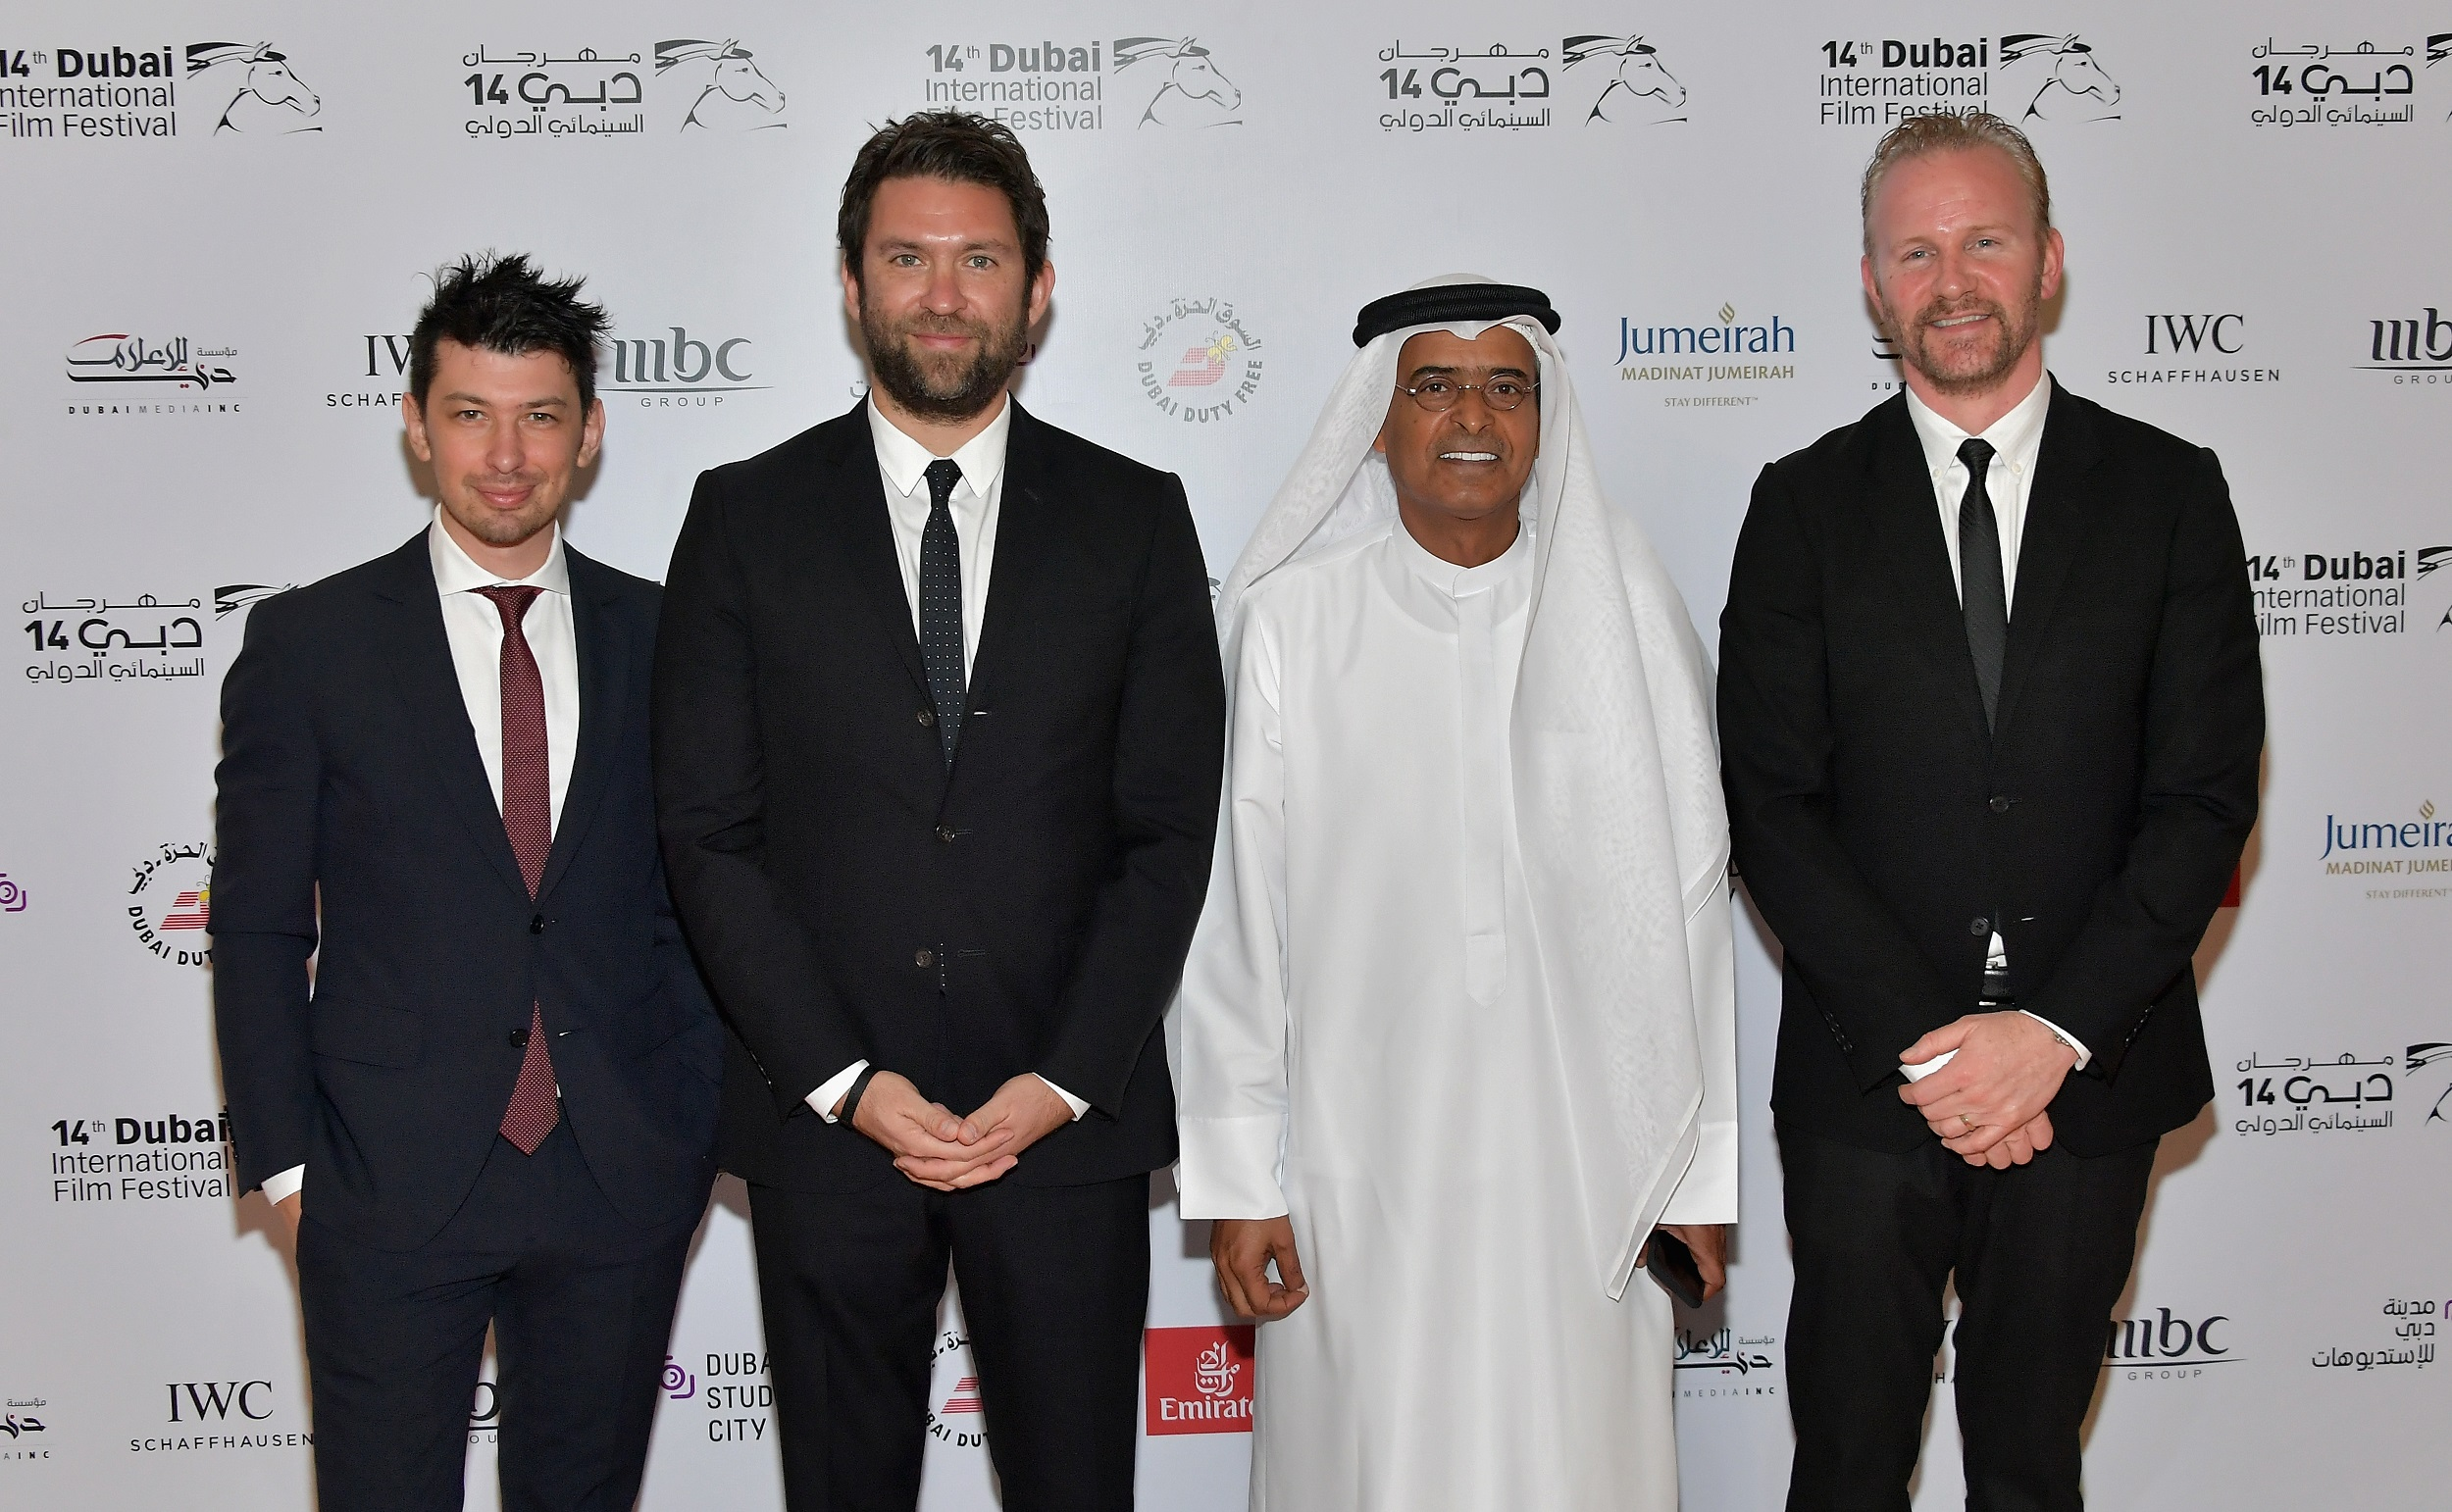 Jeremy Chilnick, Matthew Galkin, Abdulhamid Juma, Morgan Spurlock present at Dubai International Film Festival.